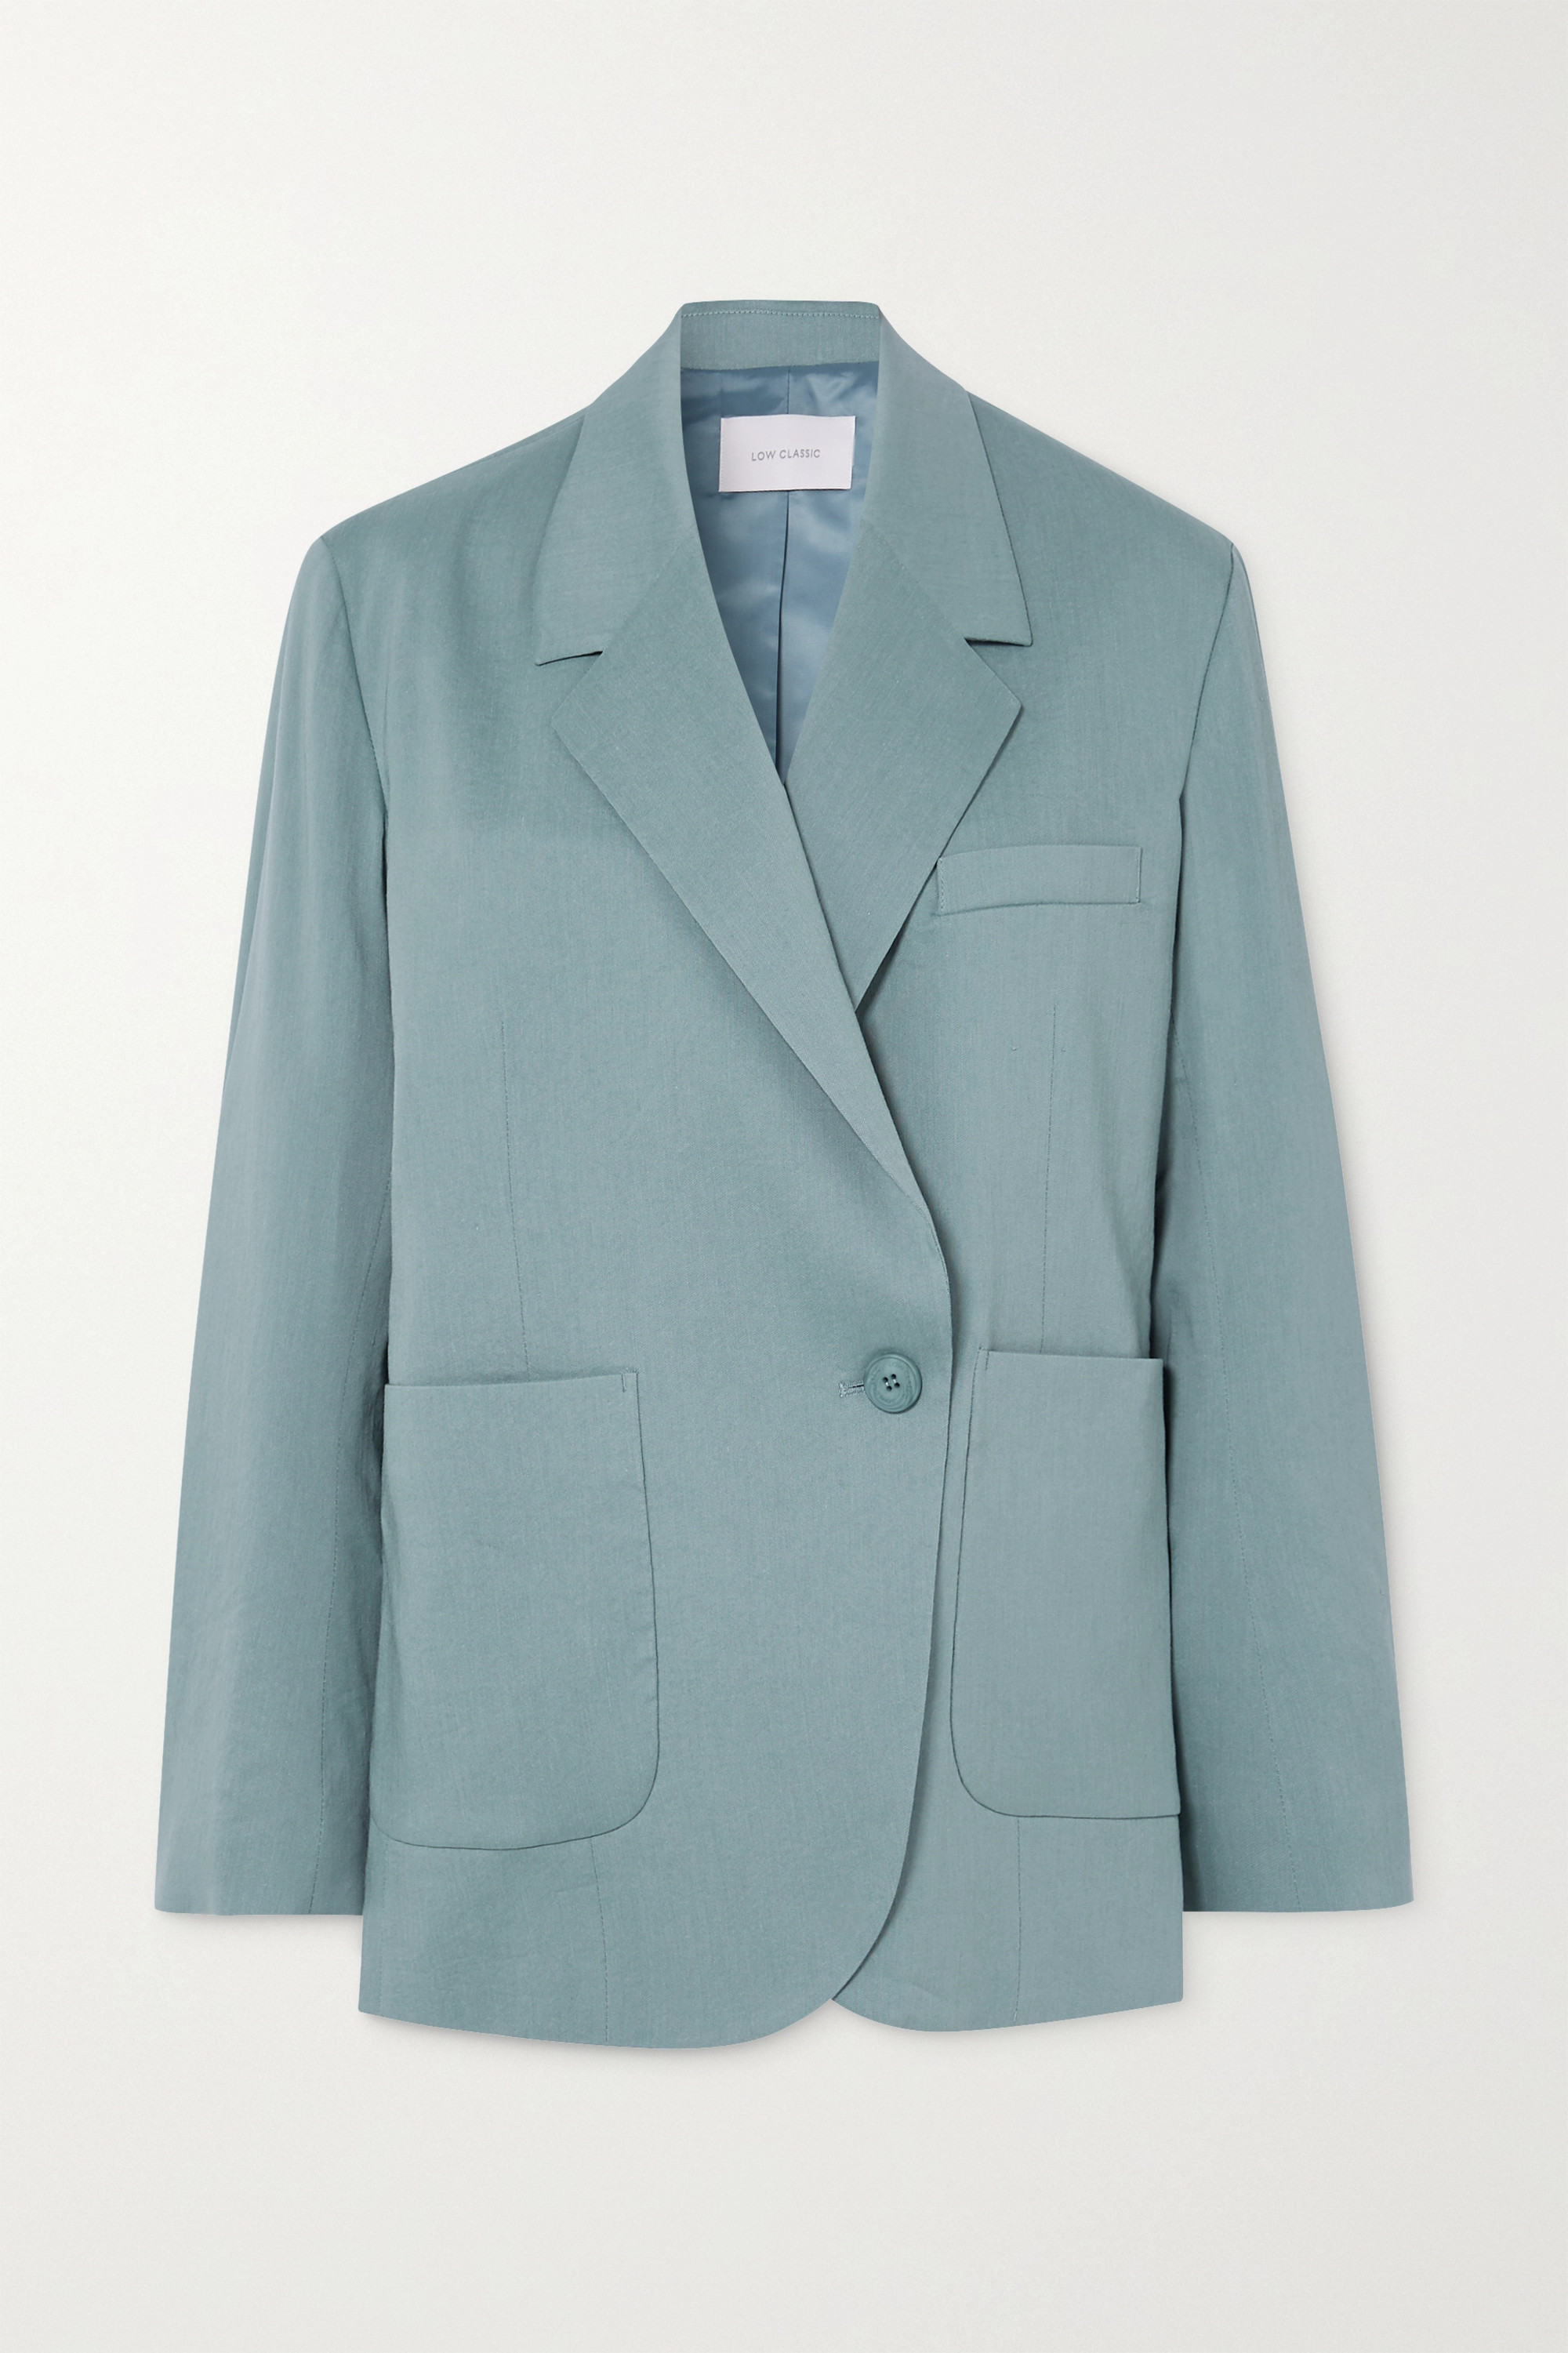 LOW CLASSIC Double-breasted woven blazer